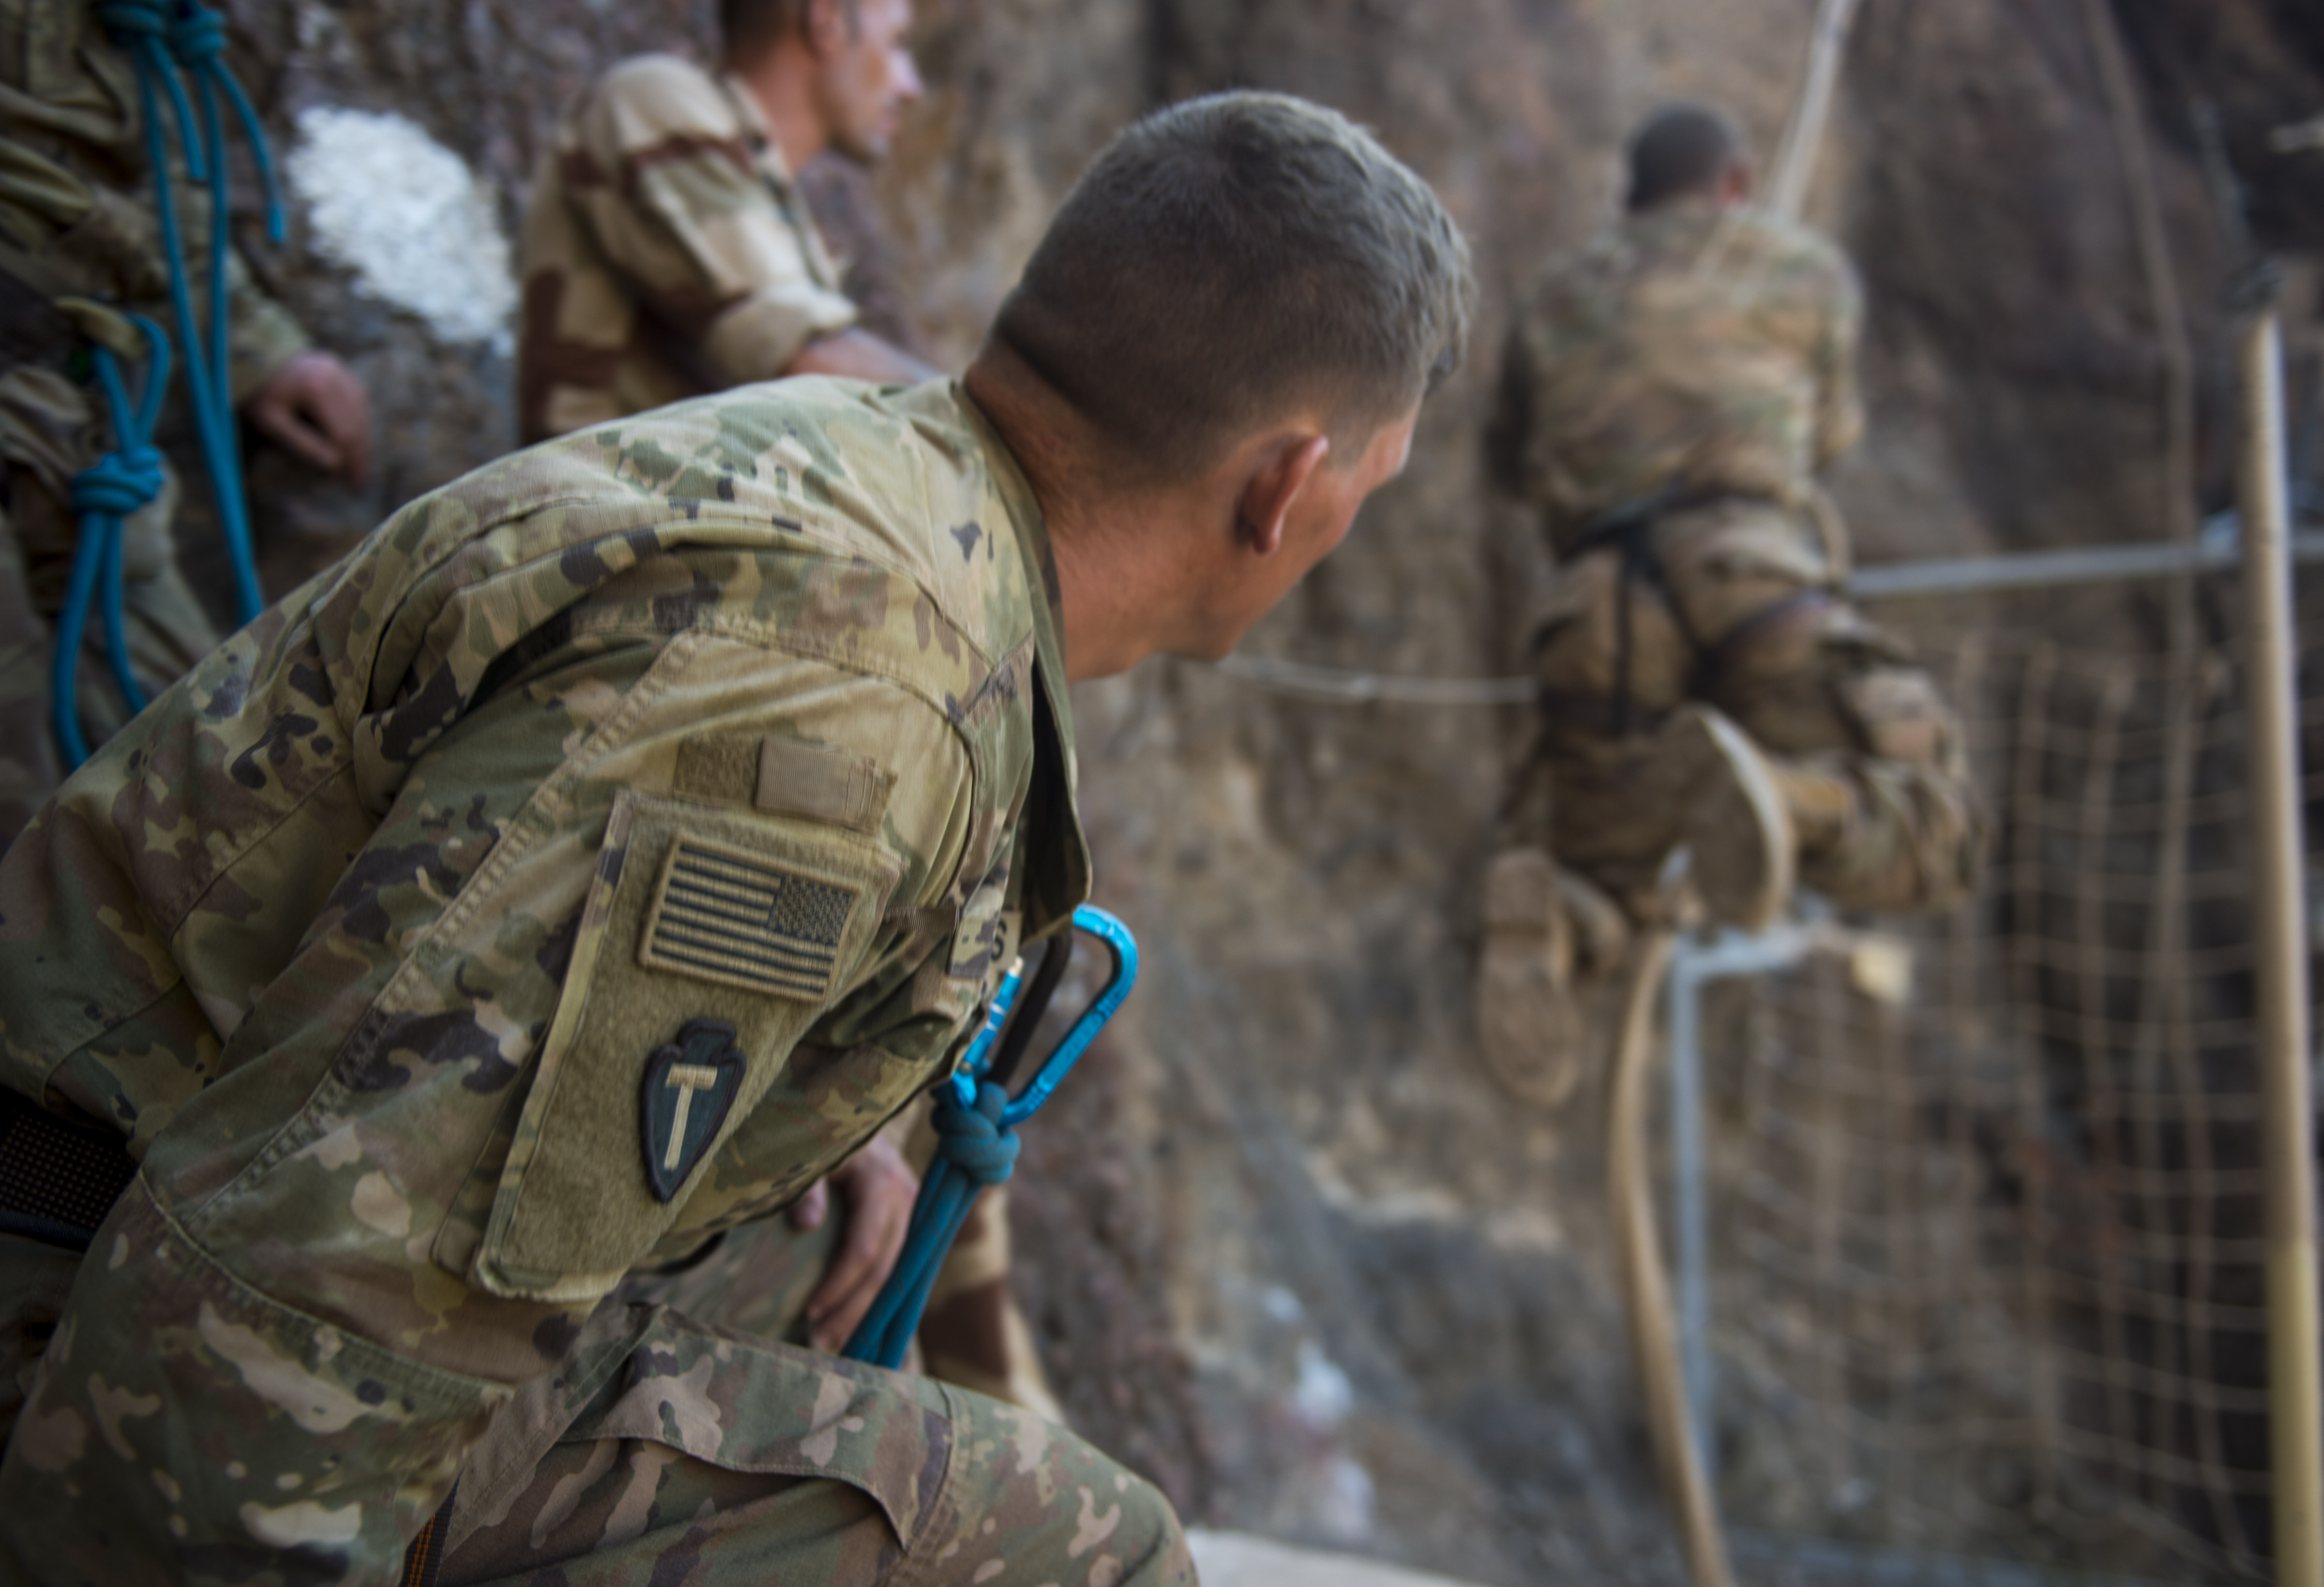 A U.S. Army Soldier assigned to the 3rd Battalion, 144th Infantry Regiment Task Force Bayonet, attached to the Combined Joint Task Force - Horn of Africa, observes a teammate swing to a cargo net during the mountain obstacle portion of the French Desert Commando Course held at Arta, Djibouti, Dec. 3, 2017. Thirty U.S. service members participated in the obstacle course alongside French marines assigned to the 5th Overseas Interarms Regiment, Djibouti.(U.S. Air Force photo by Staff Sgt. Timothy Moore)